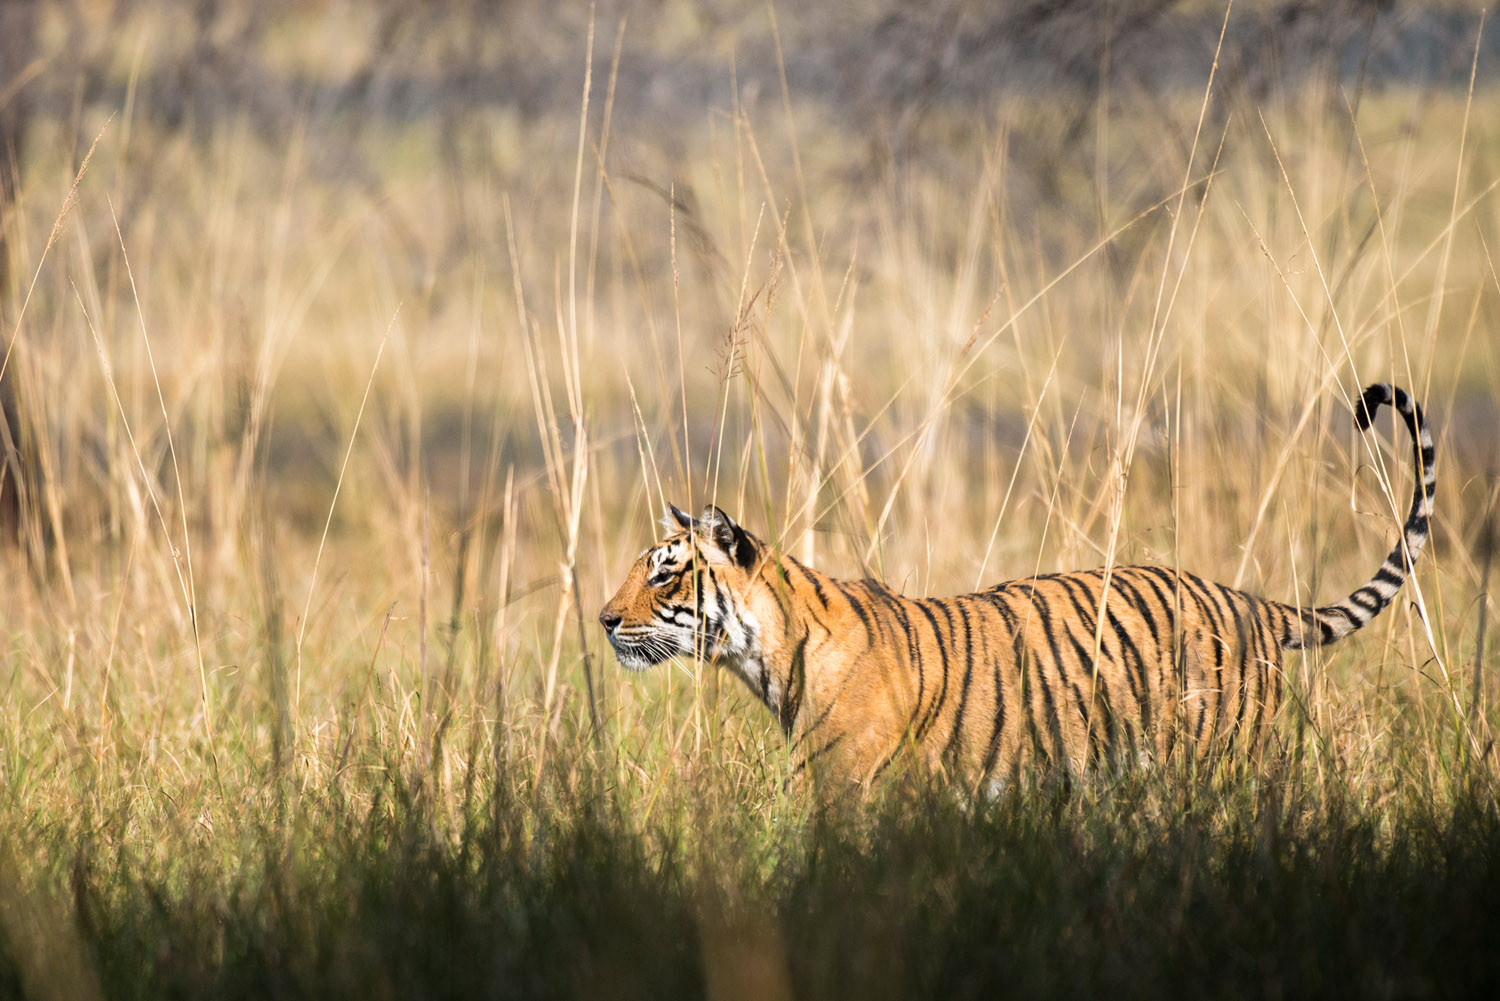 Bengal tigress long grasses, Ranthambhore National Park, Rajasthan, India